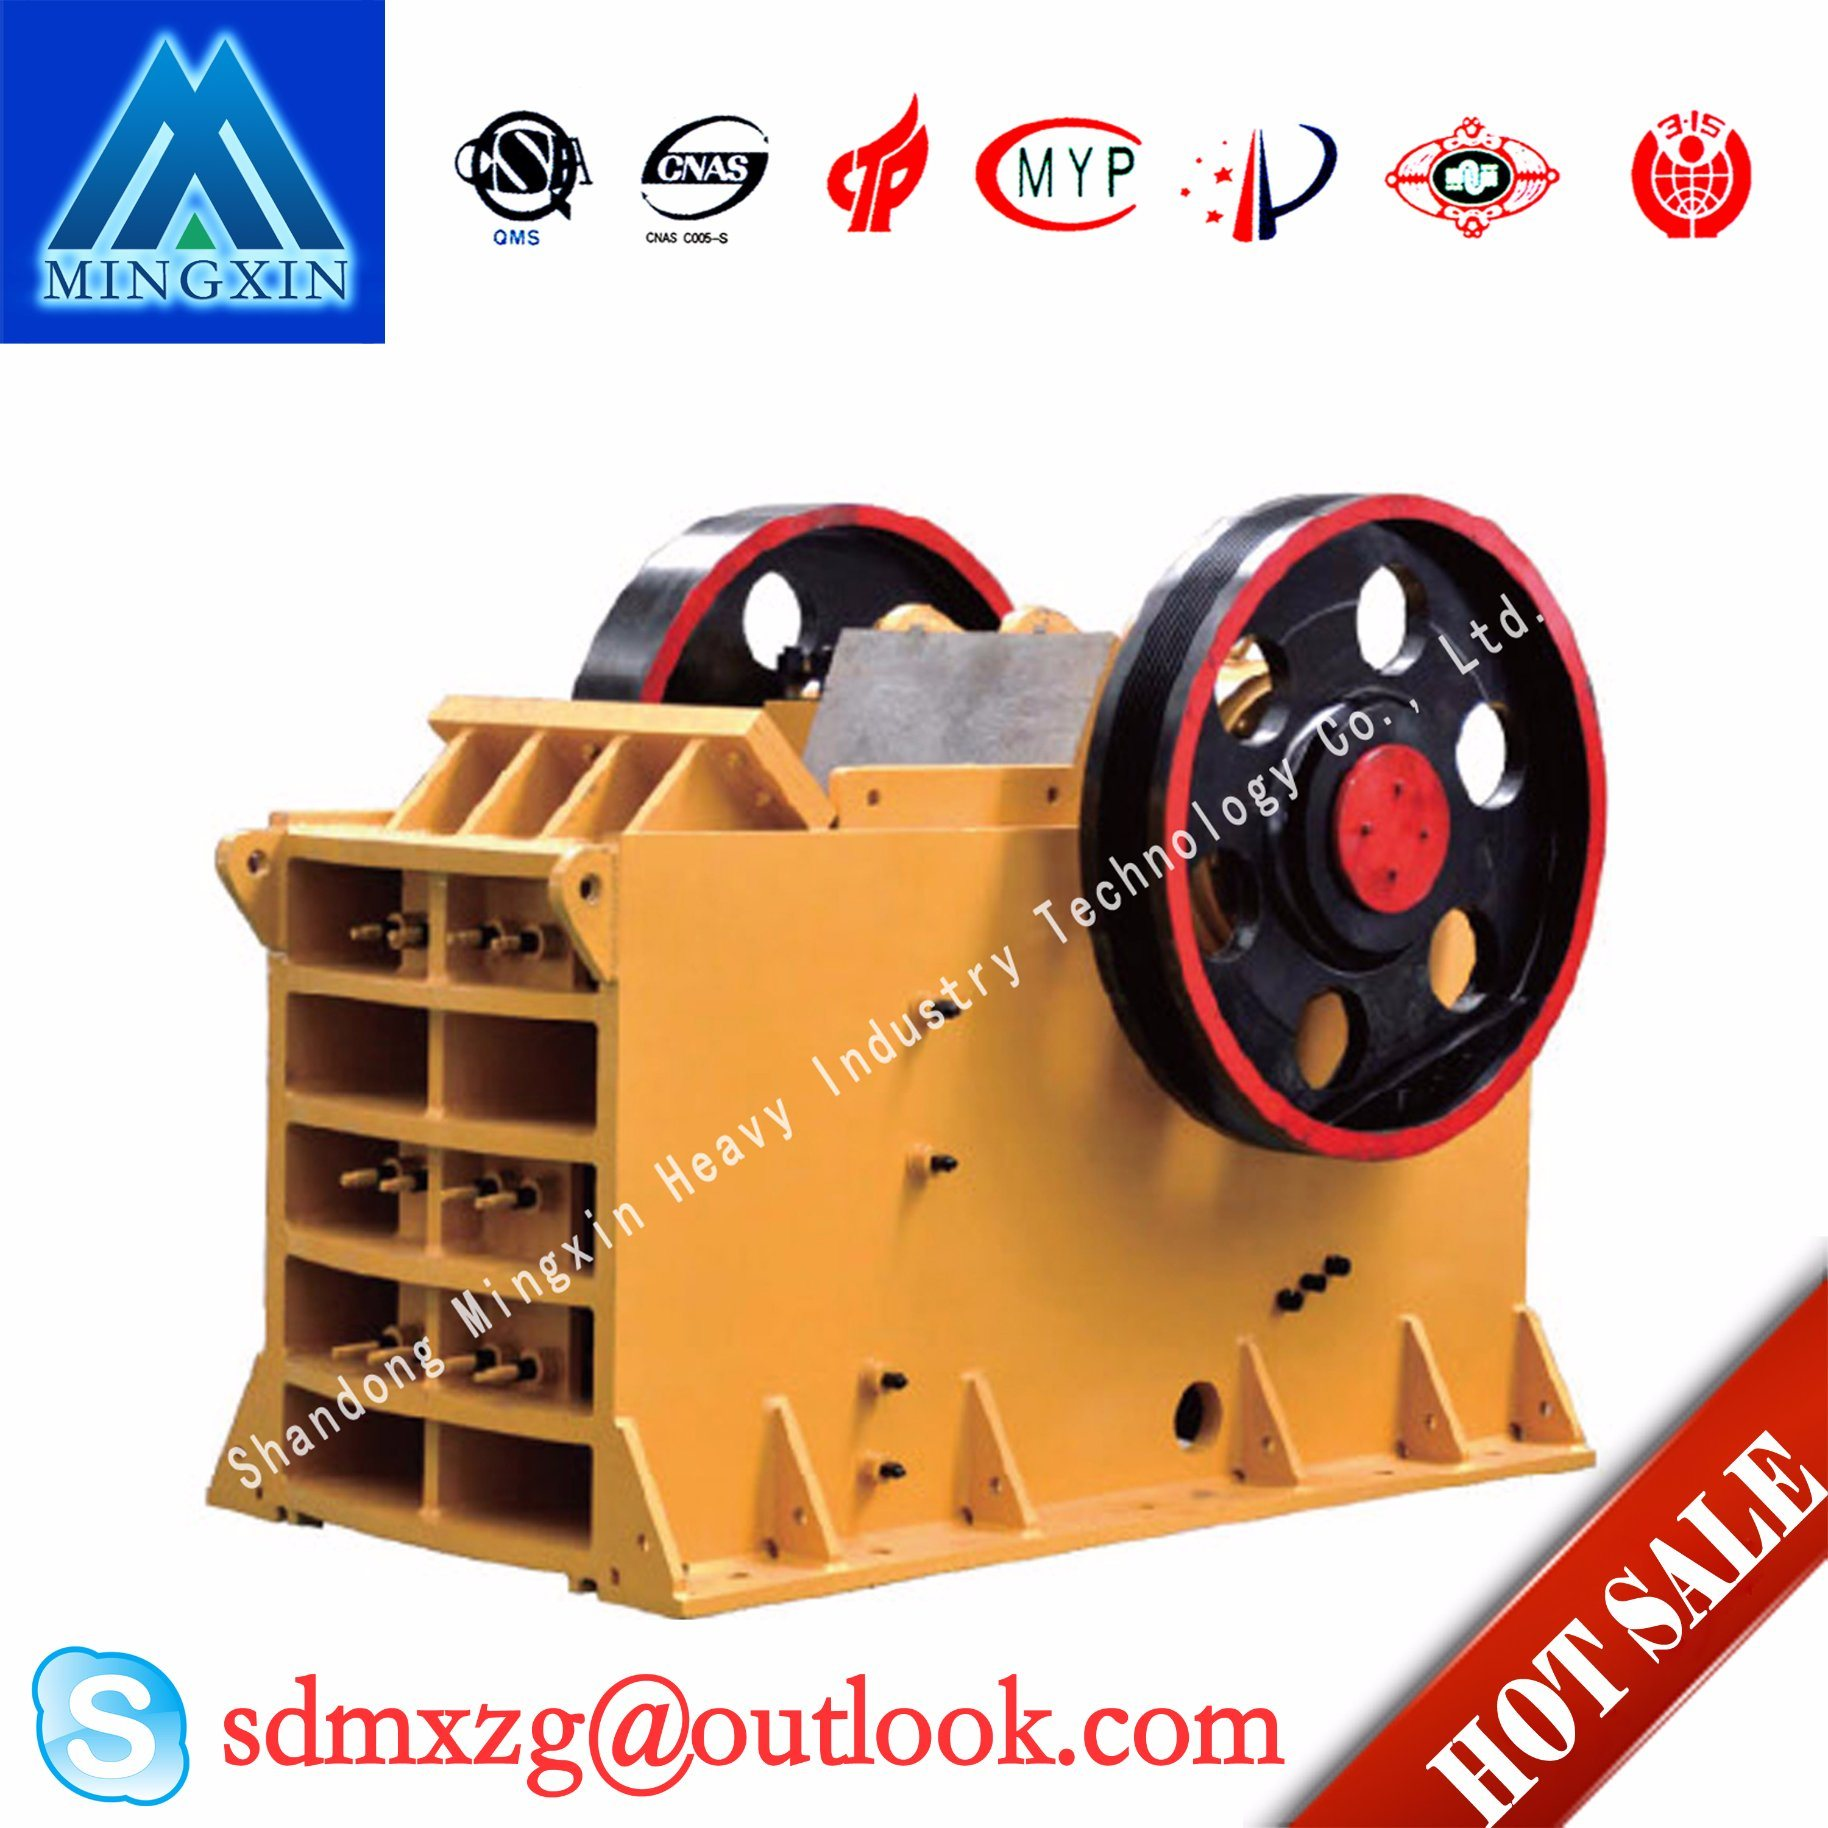 PE (X) - Jaw/Stone Crusher for Mining Equipment